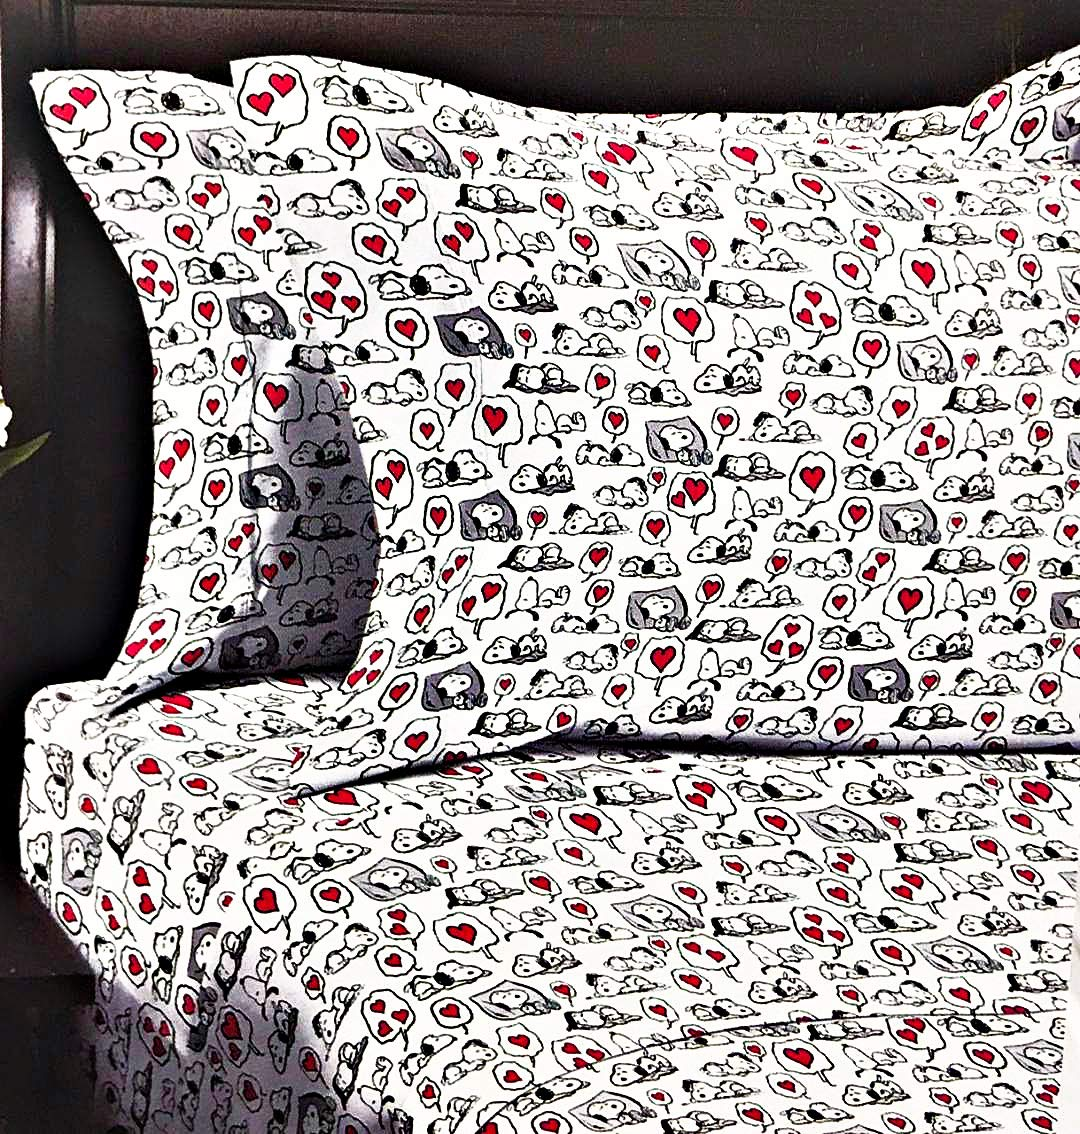 Snoopy Peanuts Valentines Sweet Dreams of Love Queen Sheet Set with Red Hearts by Berkshire